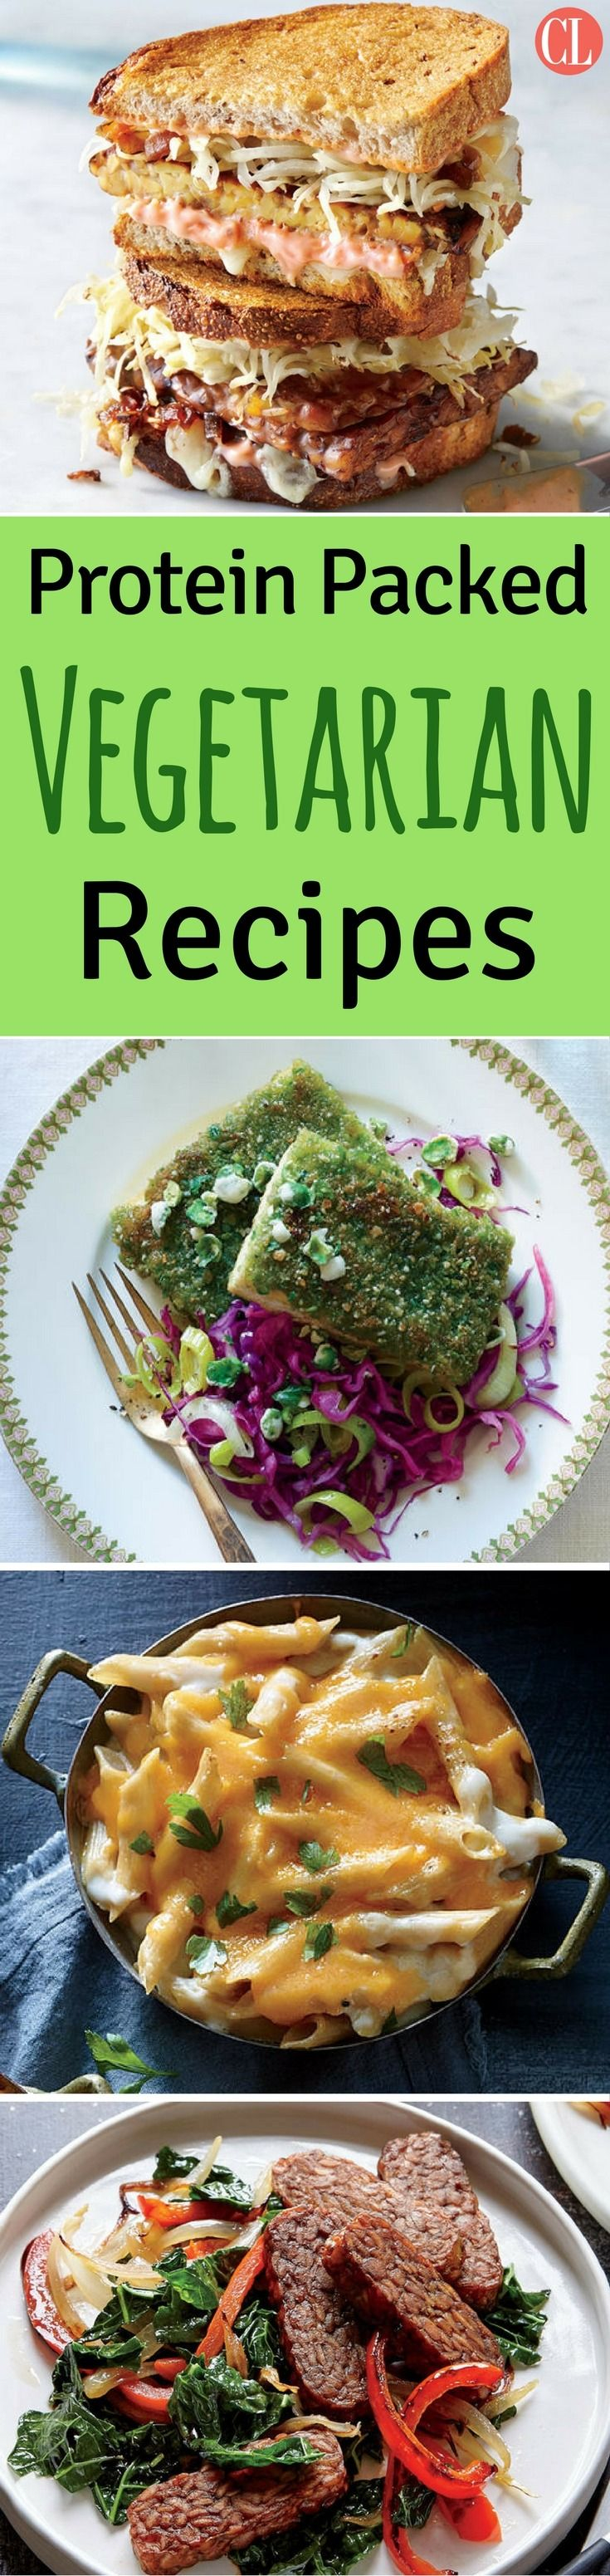 Protein Packed Vegetarian Recipes Cooking Light Vegetarian Protein Recipes Recipes Vegetarian Recipes